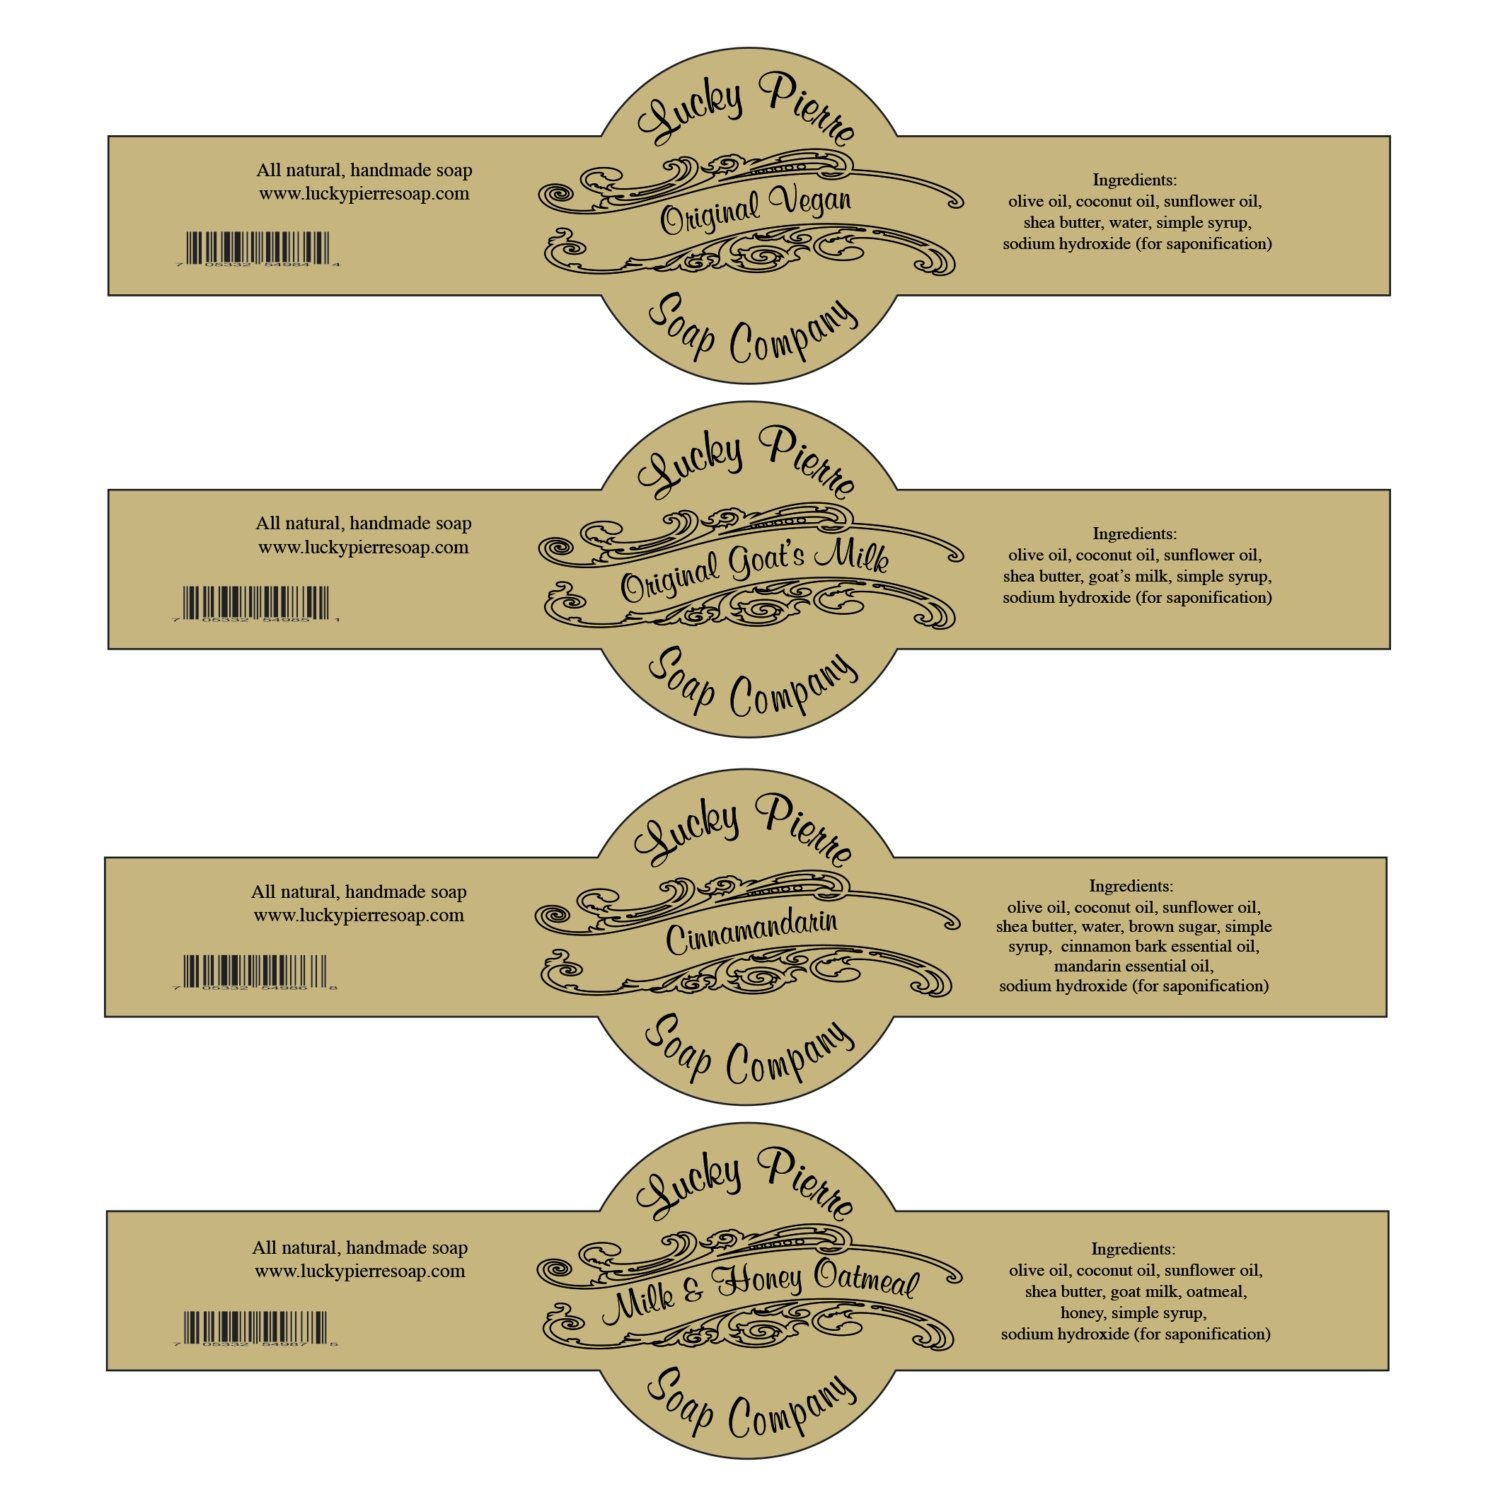 Pinsonja Wiese On Aromatherapy Recipes | Soap Labels, Label - Free Printable Cigar Label Template